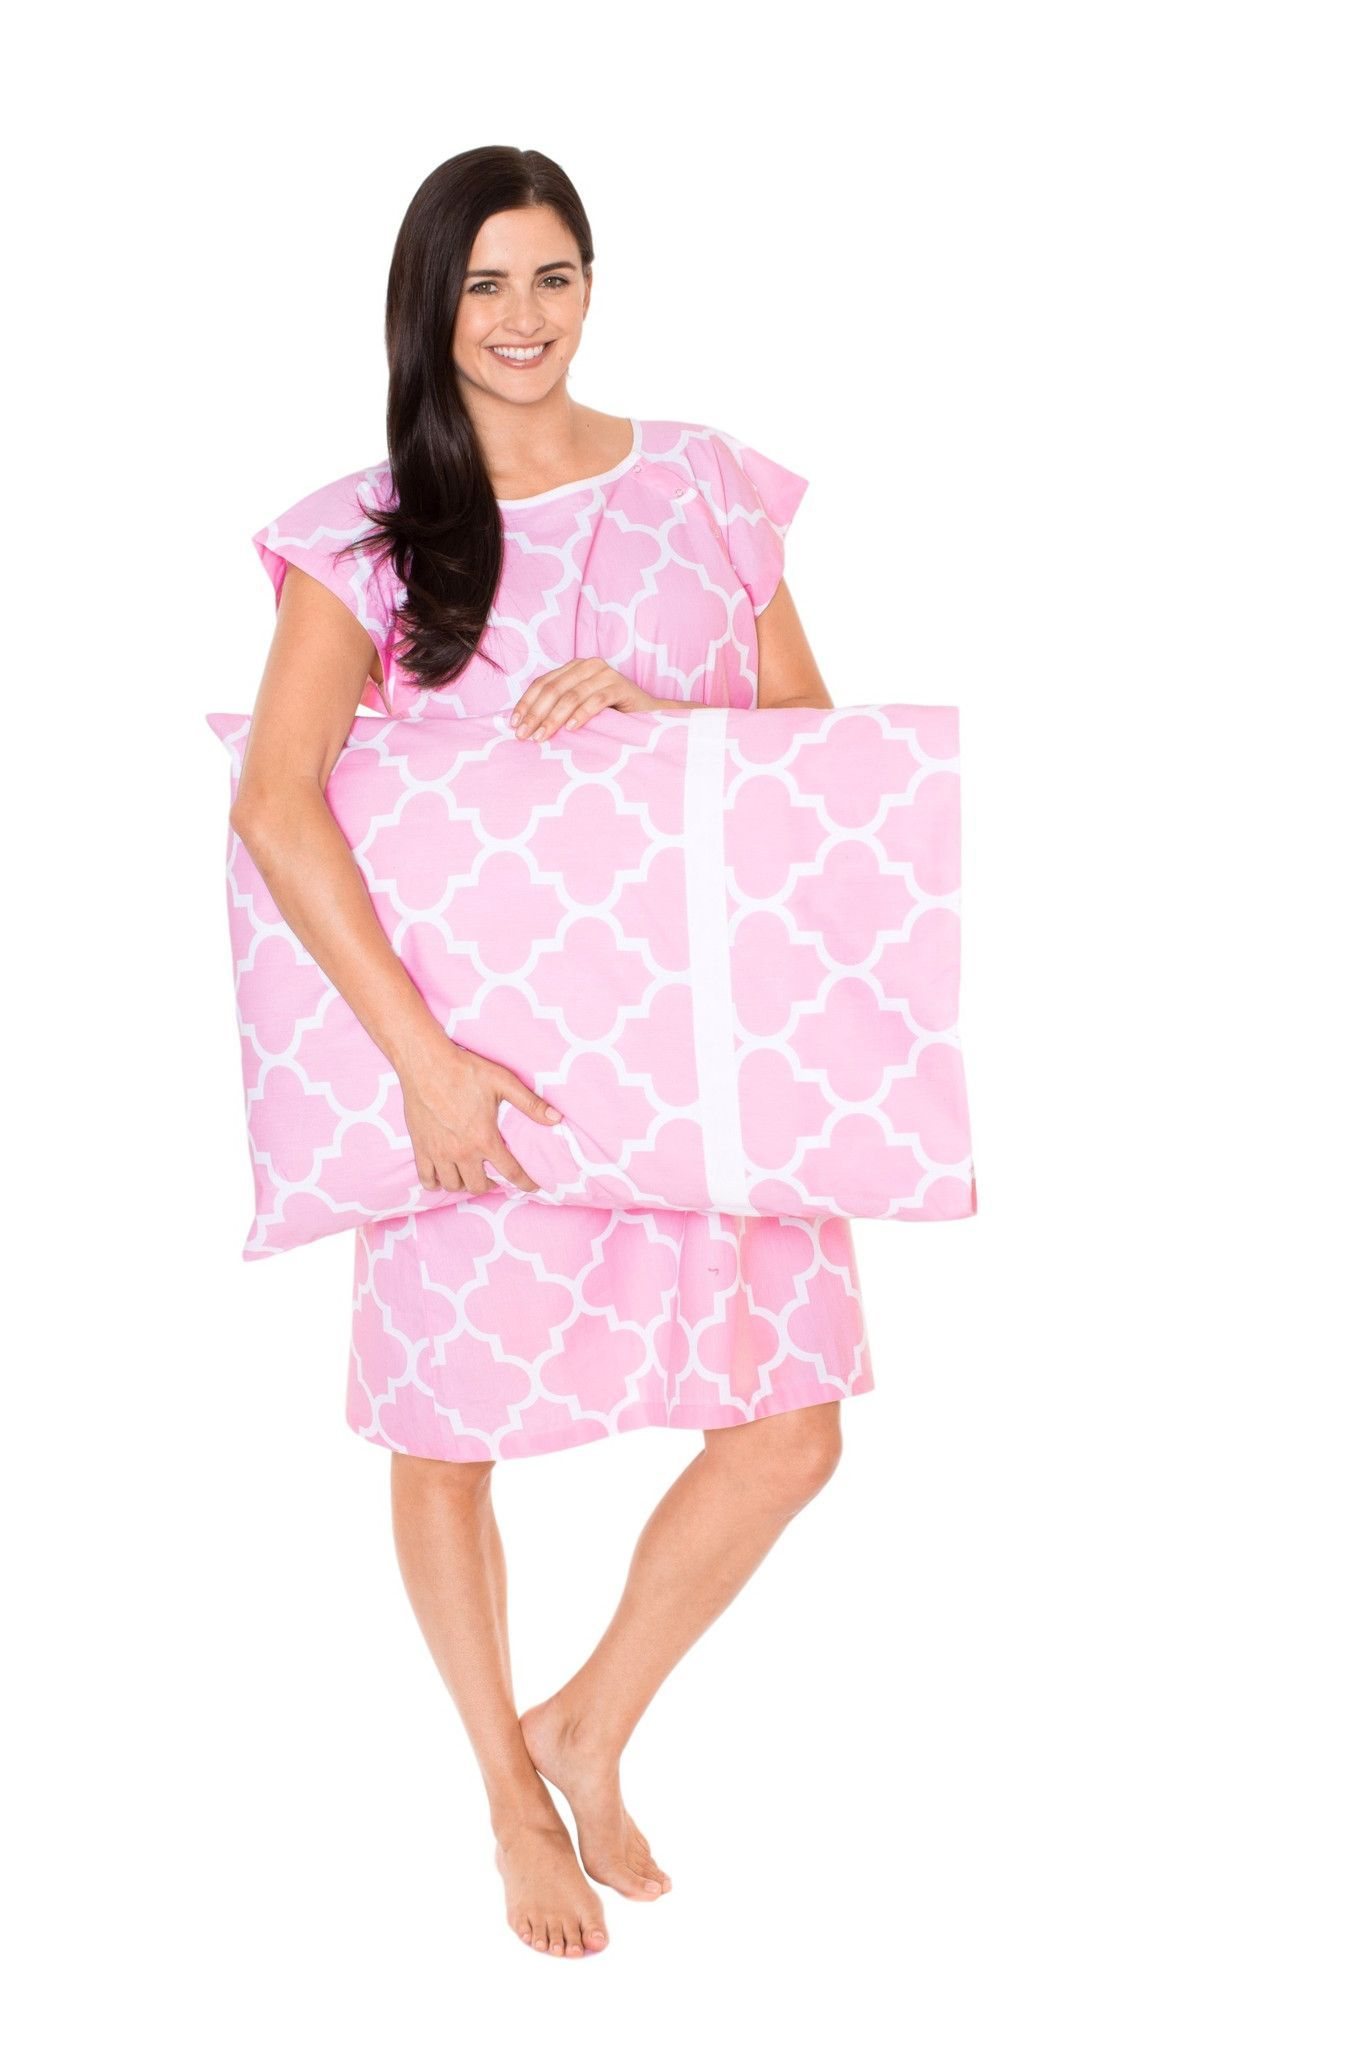 emily maternity labor delivery hospital gown gownie & pillowcase set